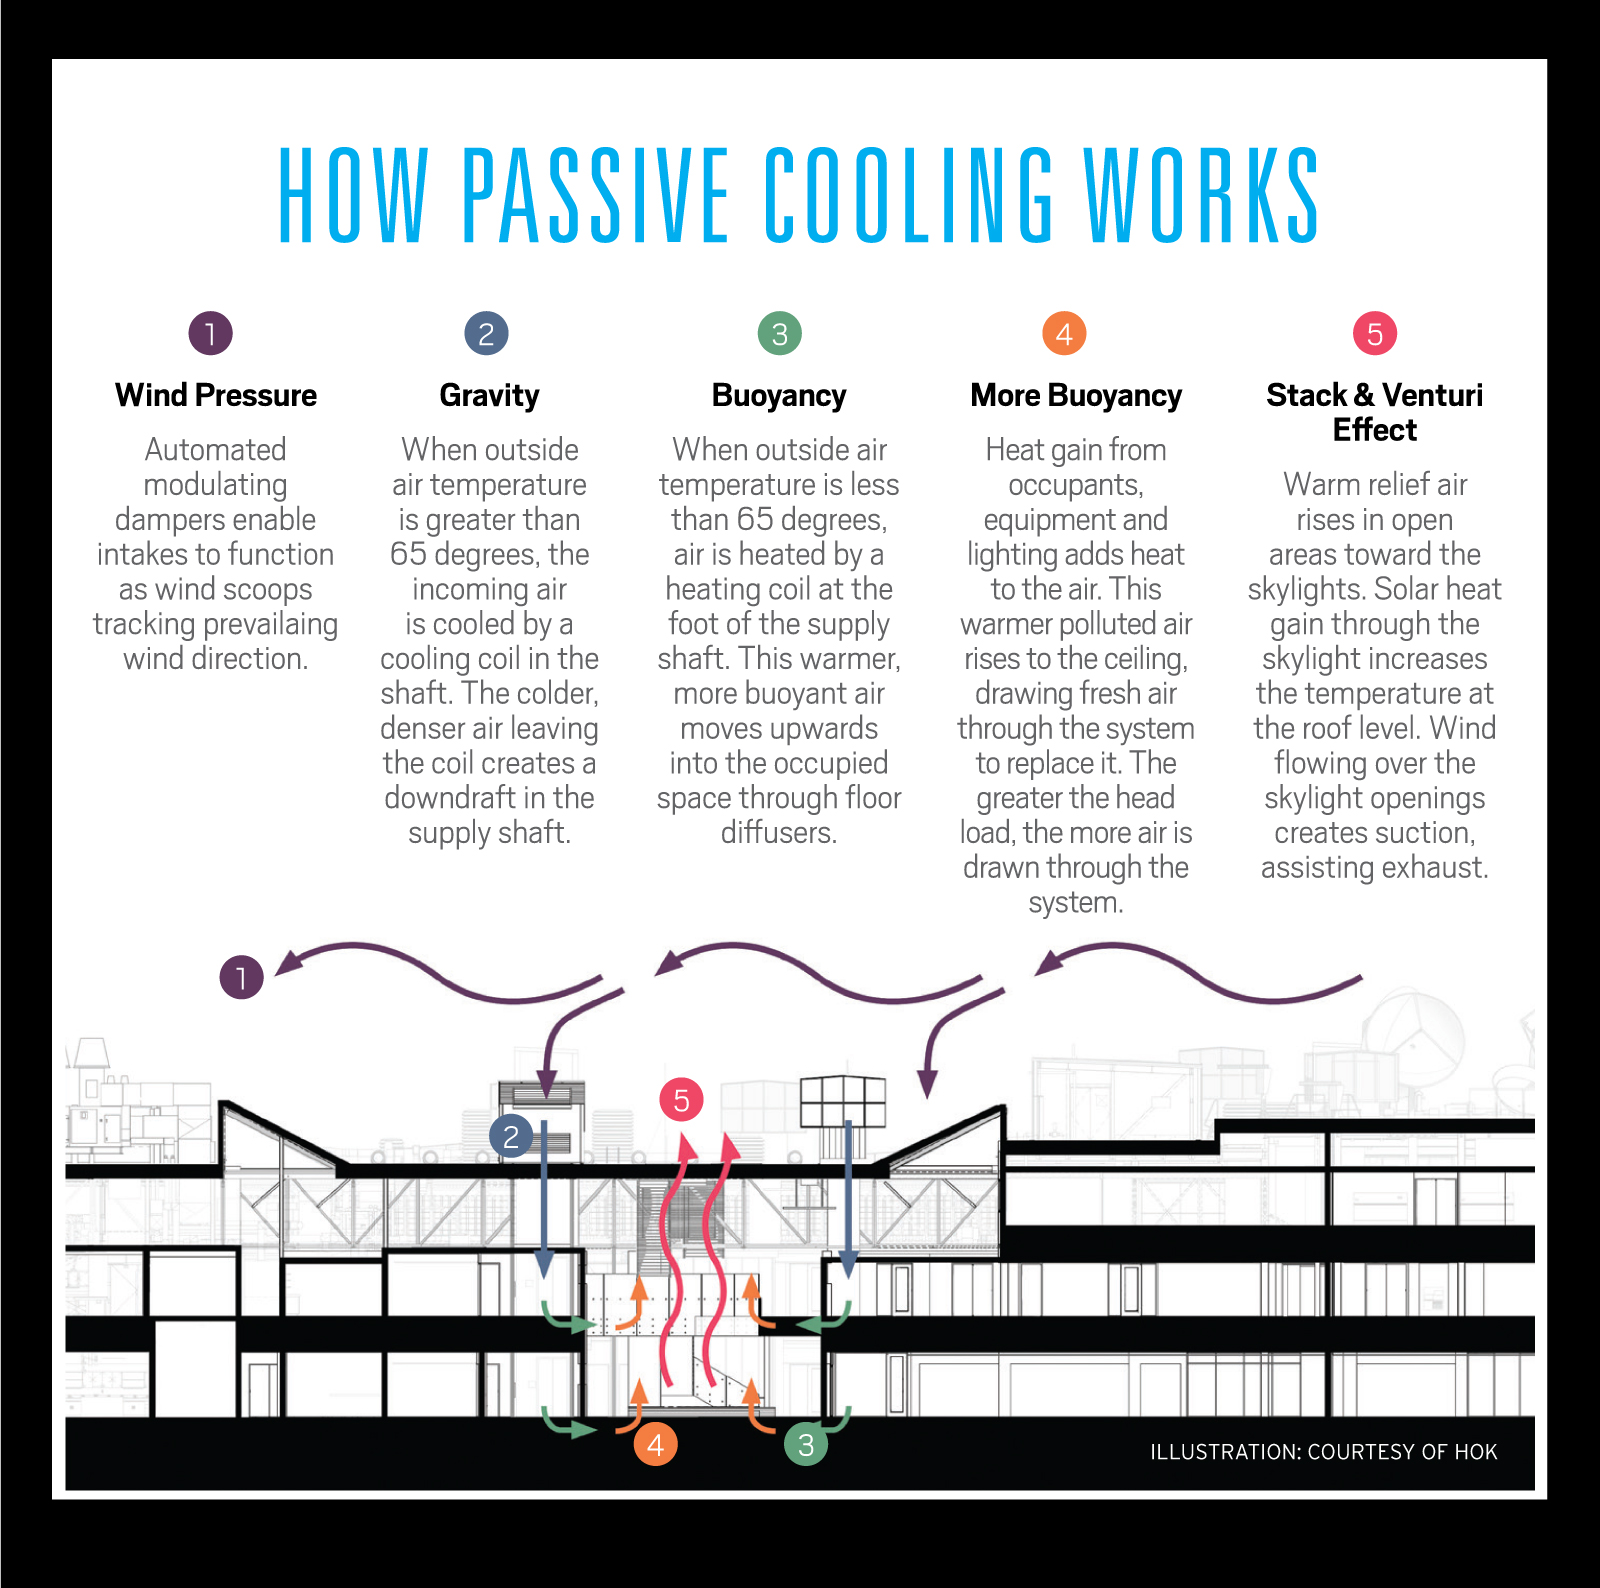 (click to view large version) | How Passive Cooling Works. Illustration courtesy of HOK